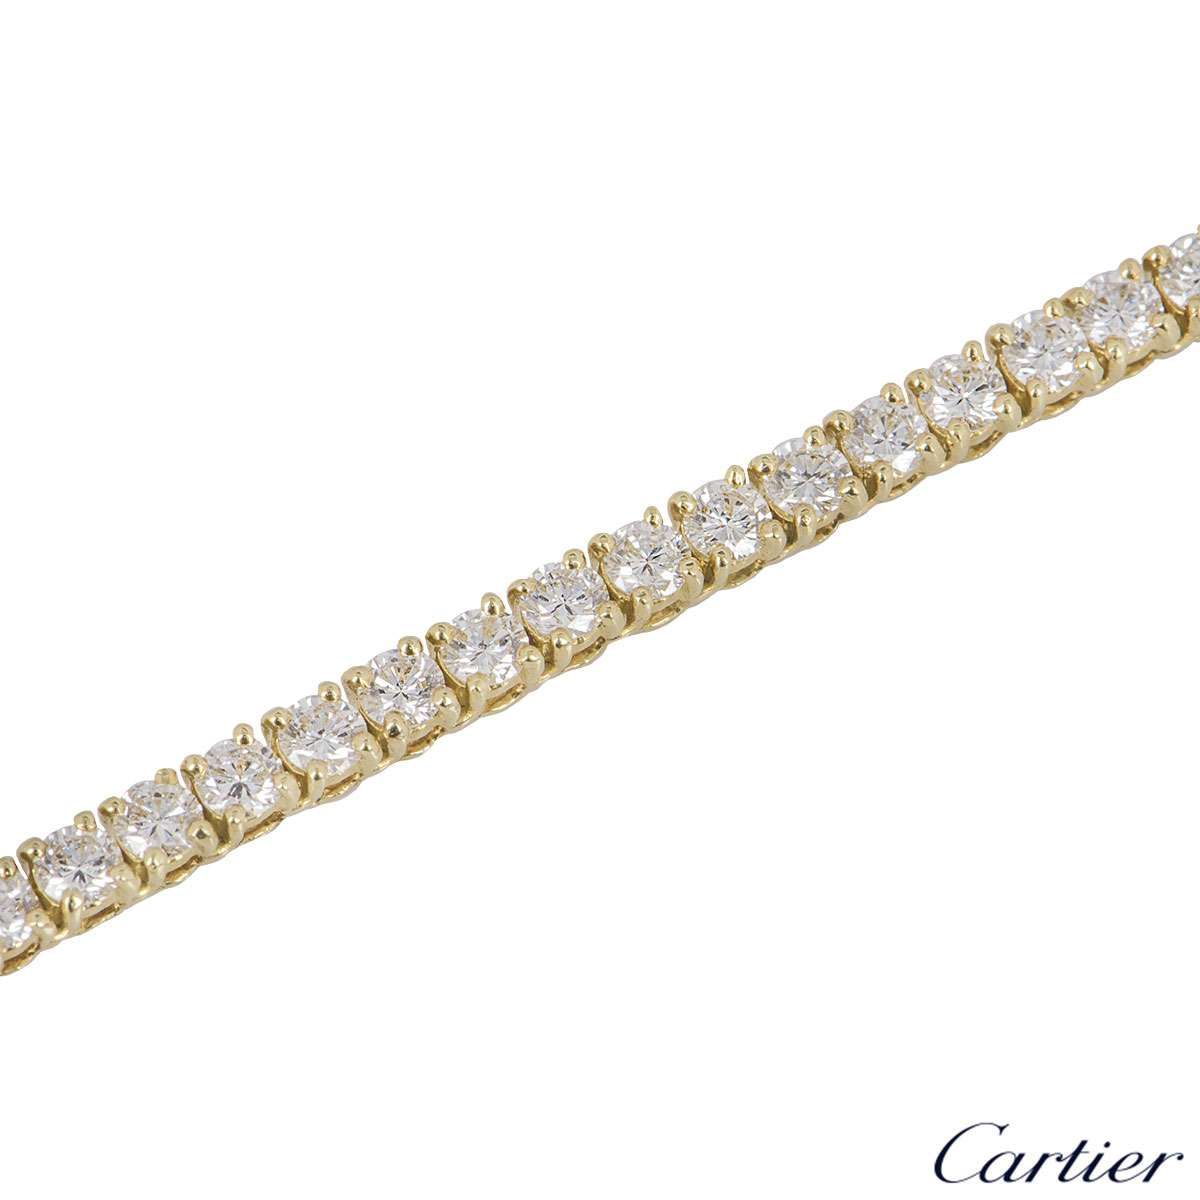 Cartier Yellow Gold Diamond Line Necklace 10.30ct